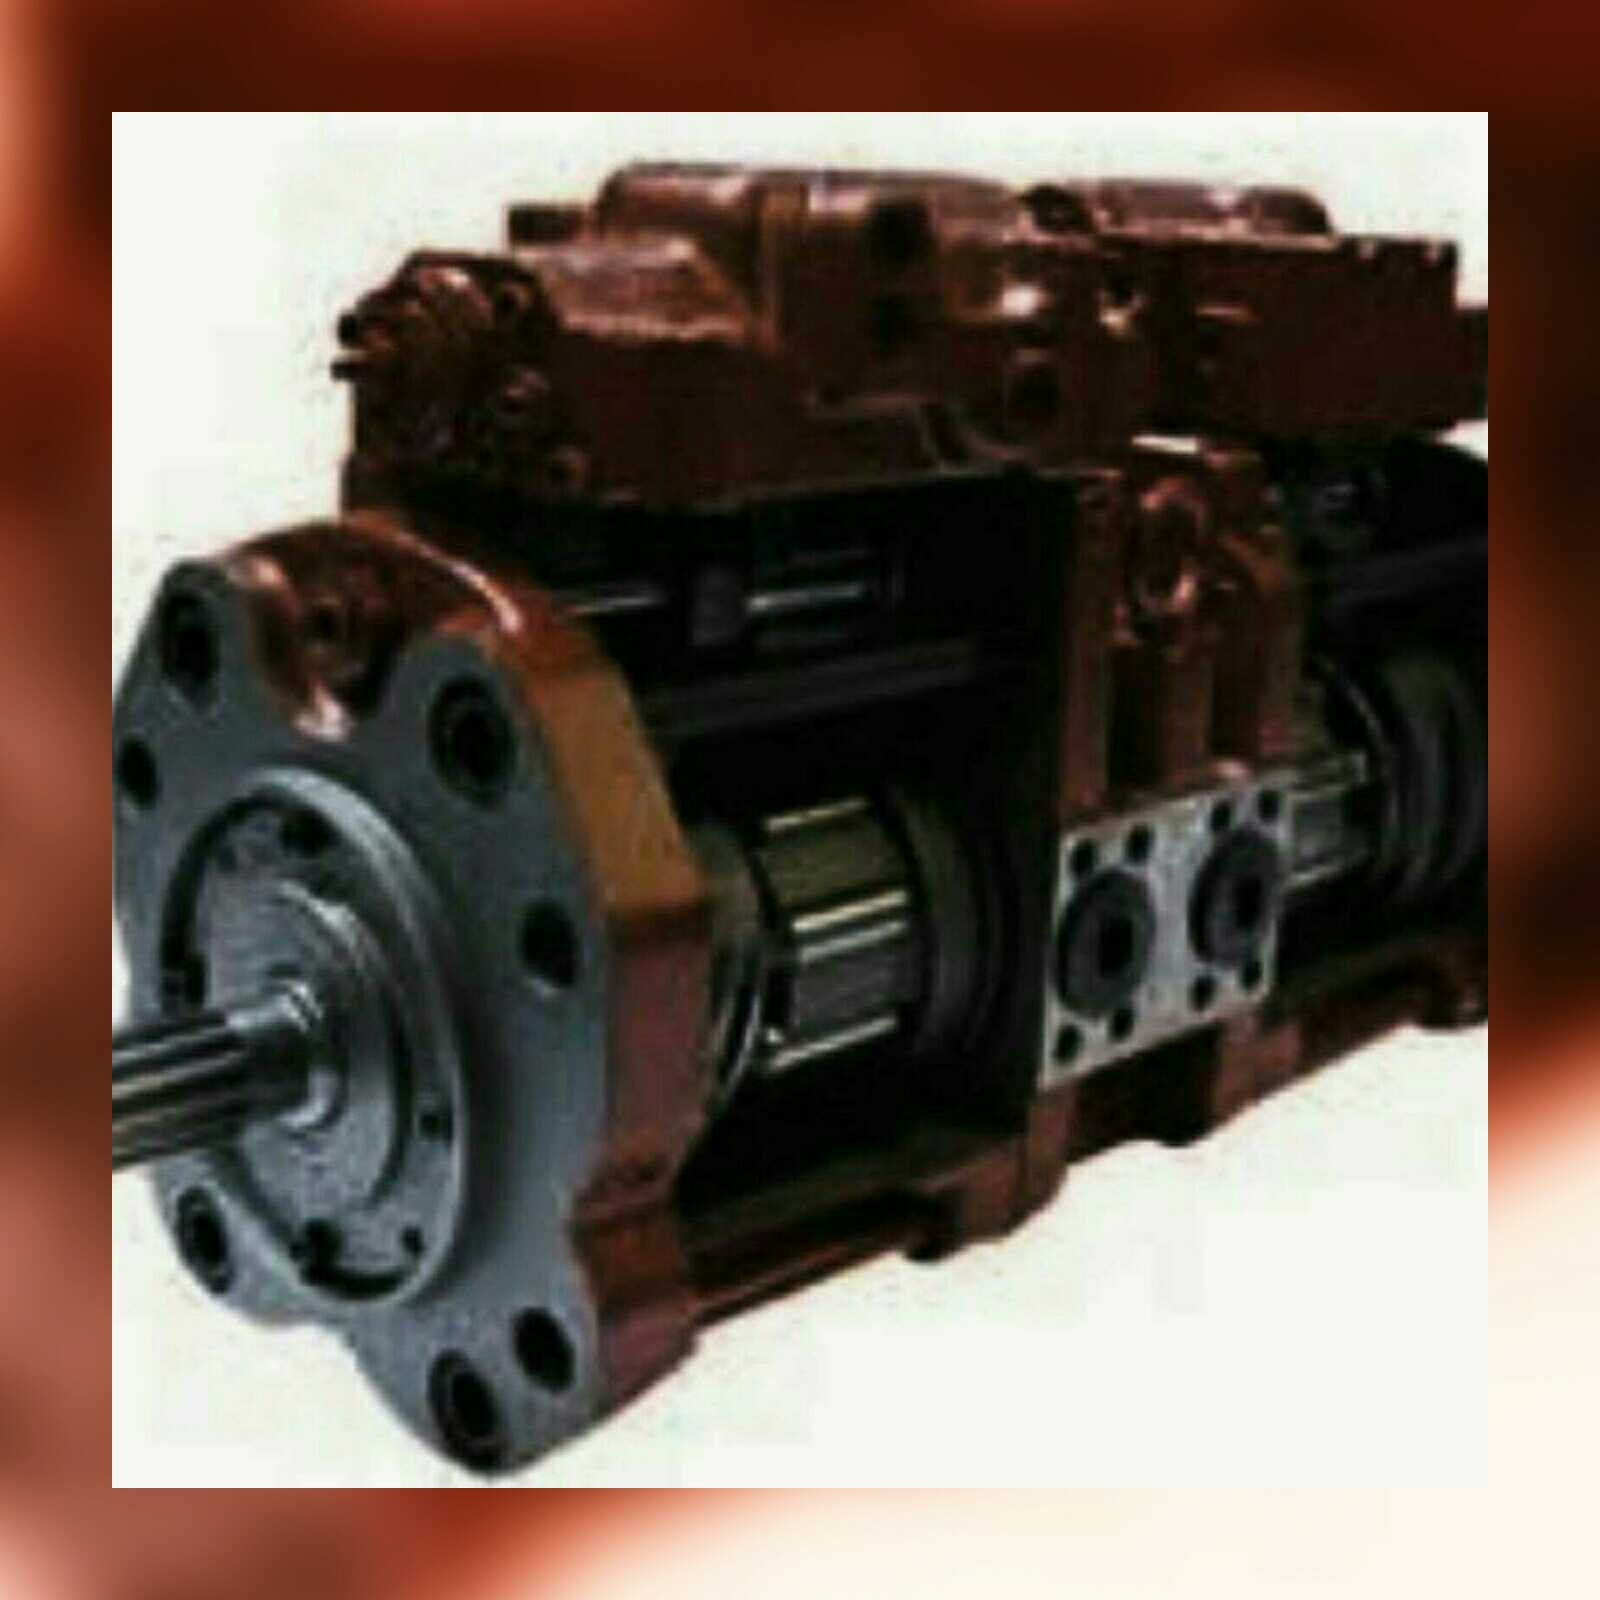 Hydraulic Pumps and Motors have Different Types of Pressure Limits